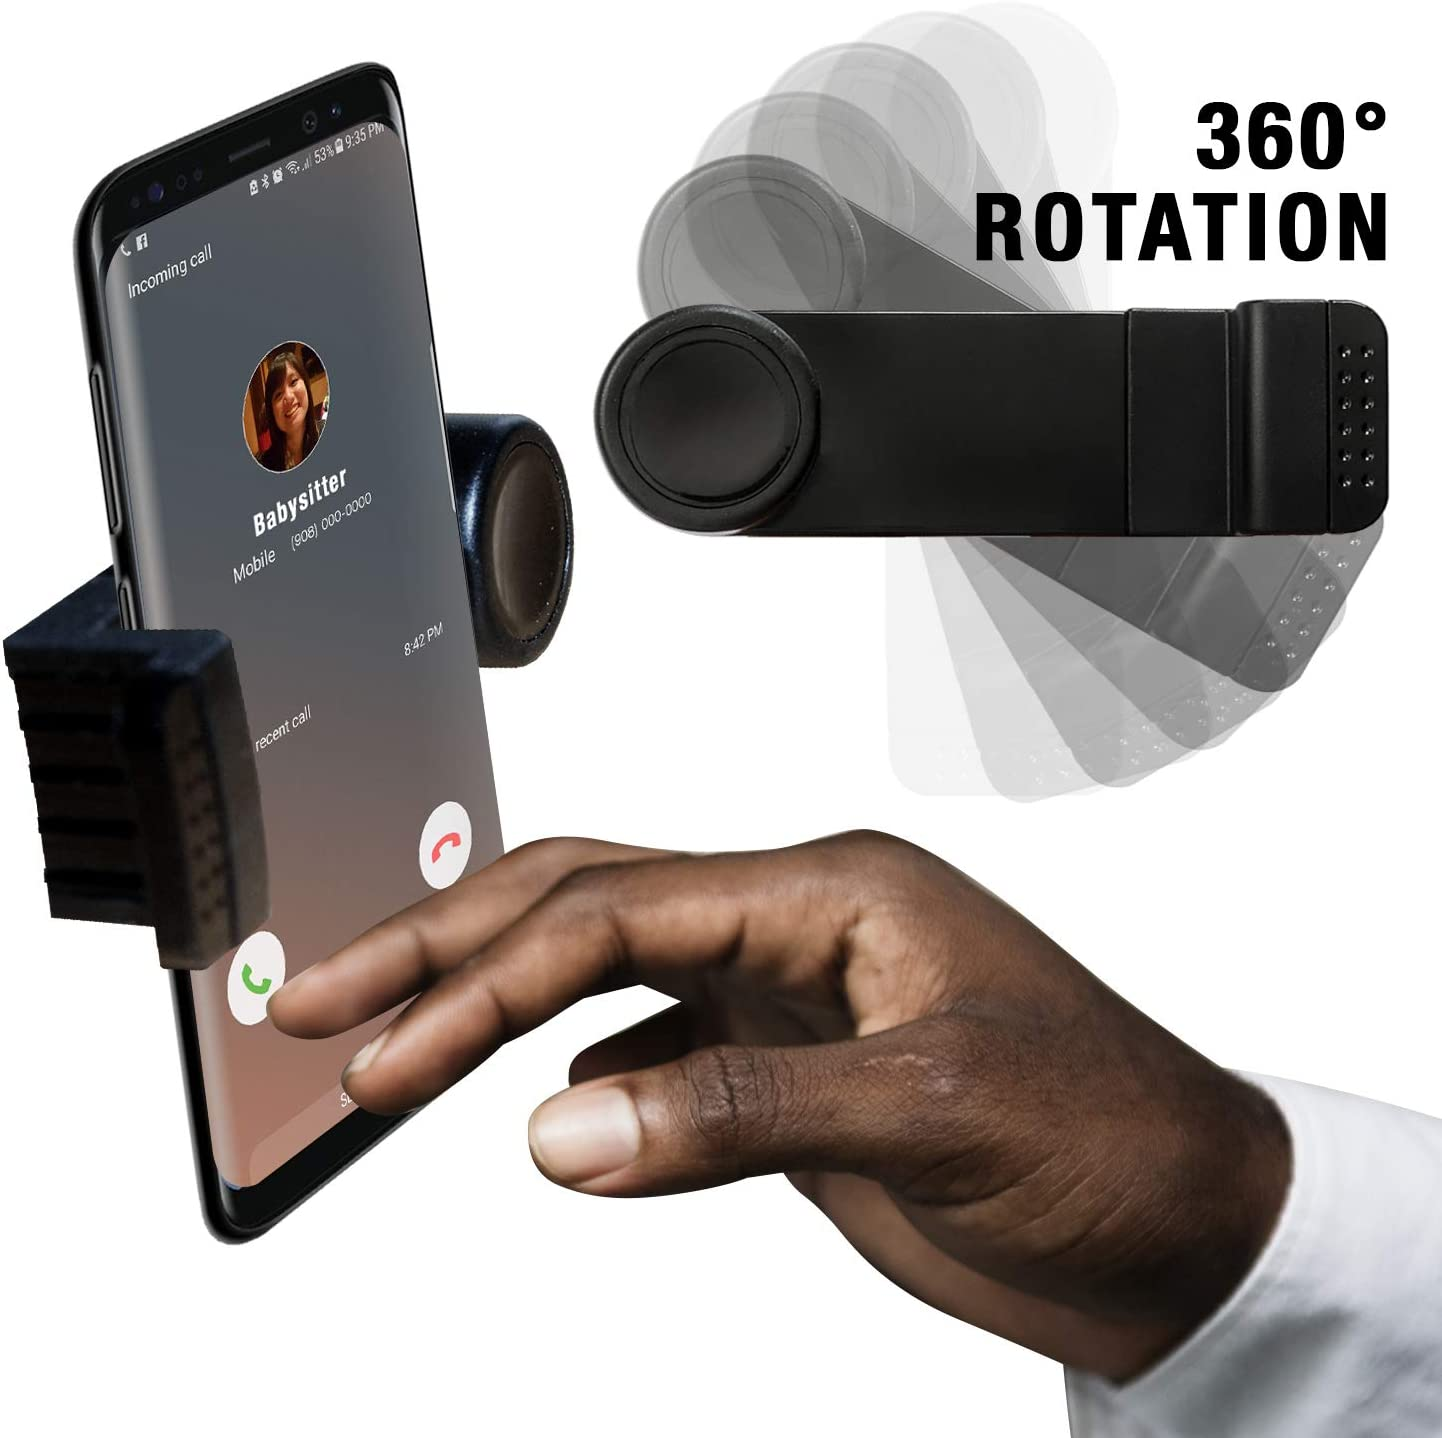 Universal Vent Phone Holder Expands for All Cell Phones iPhone and Android Phones Easy to USE Fully Adjustable with 360/° Rotation. Car Phone Holder Stick to car air Vent No Tools Required